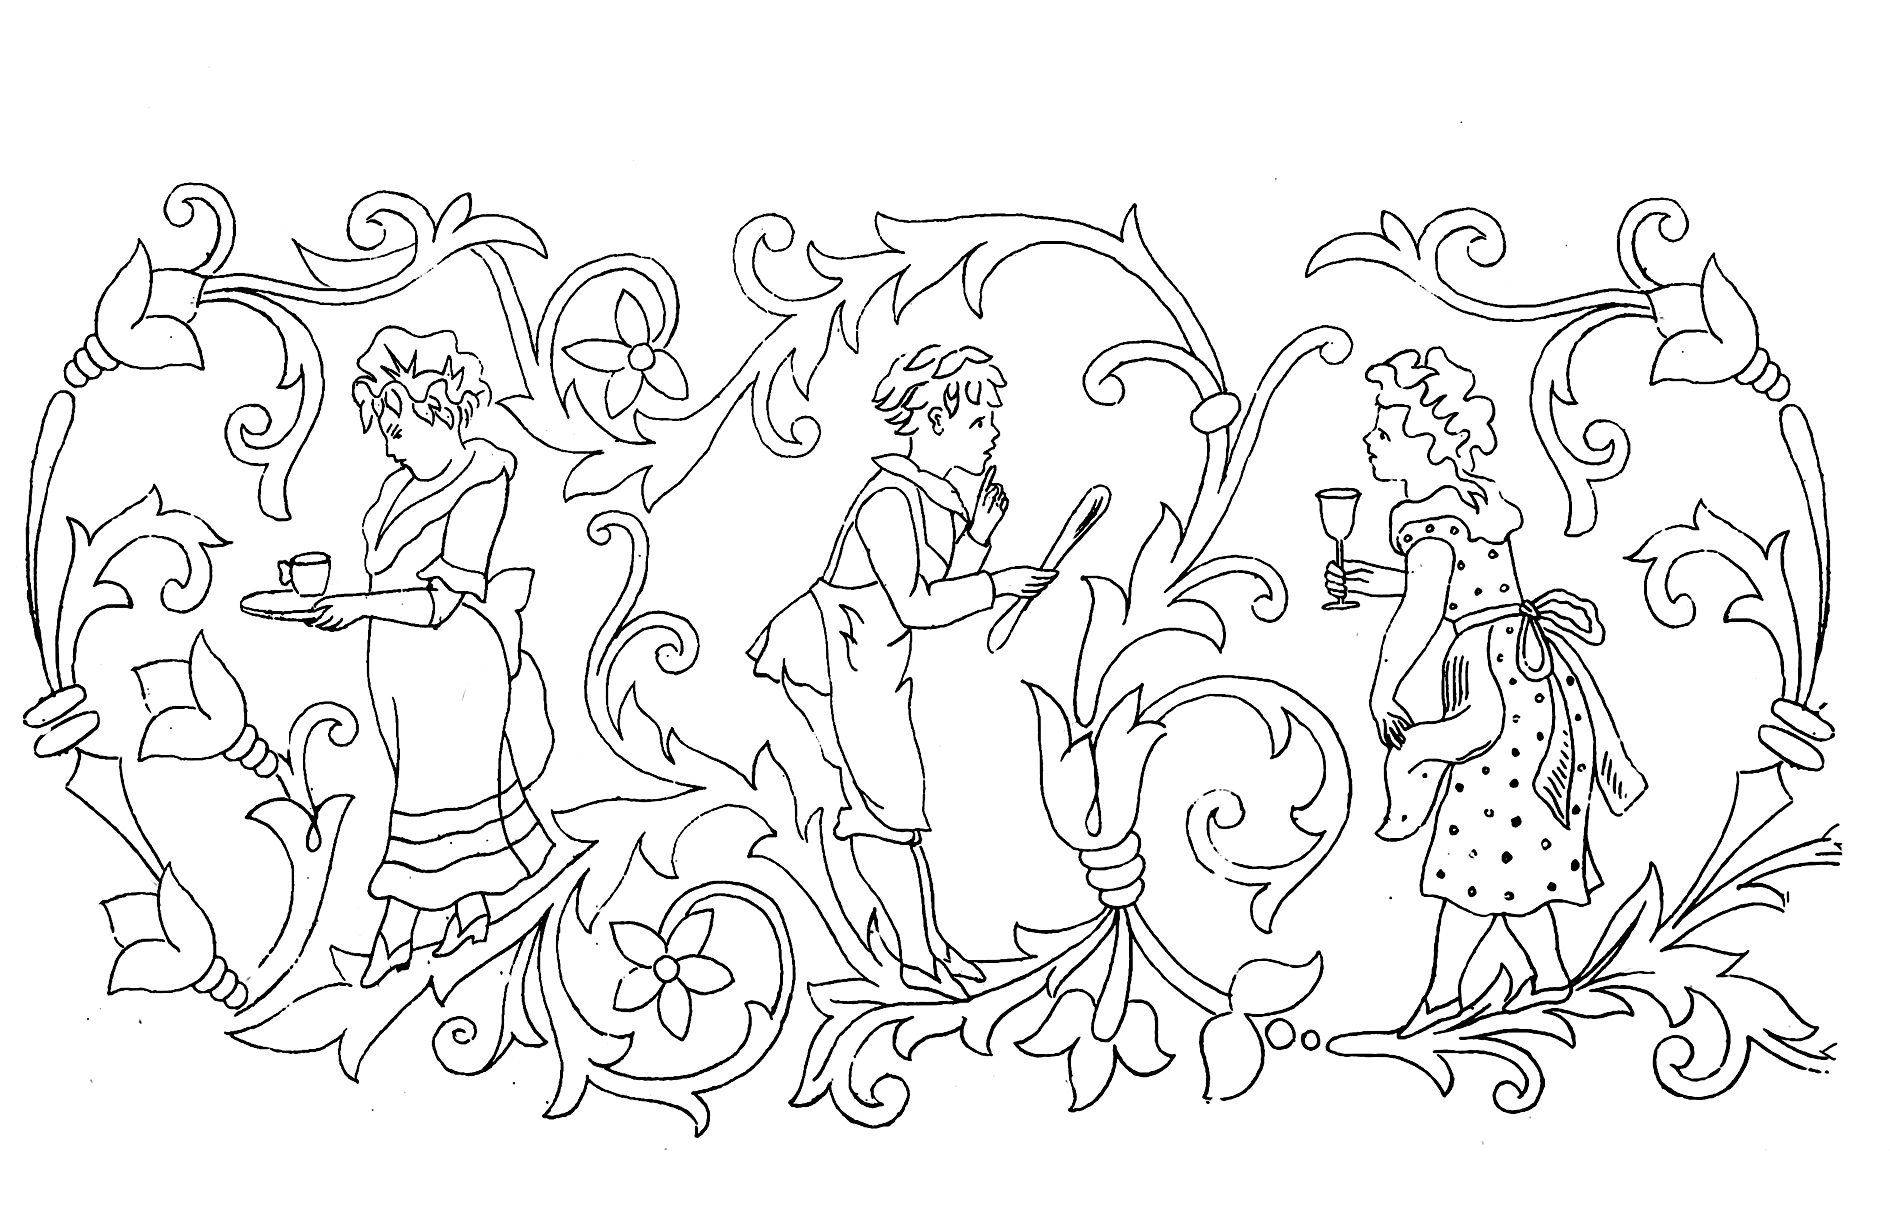 victorian colouring sheets victorian fashion coloring page free printable coloring victorian sheets colouring